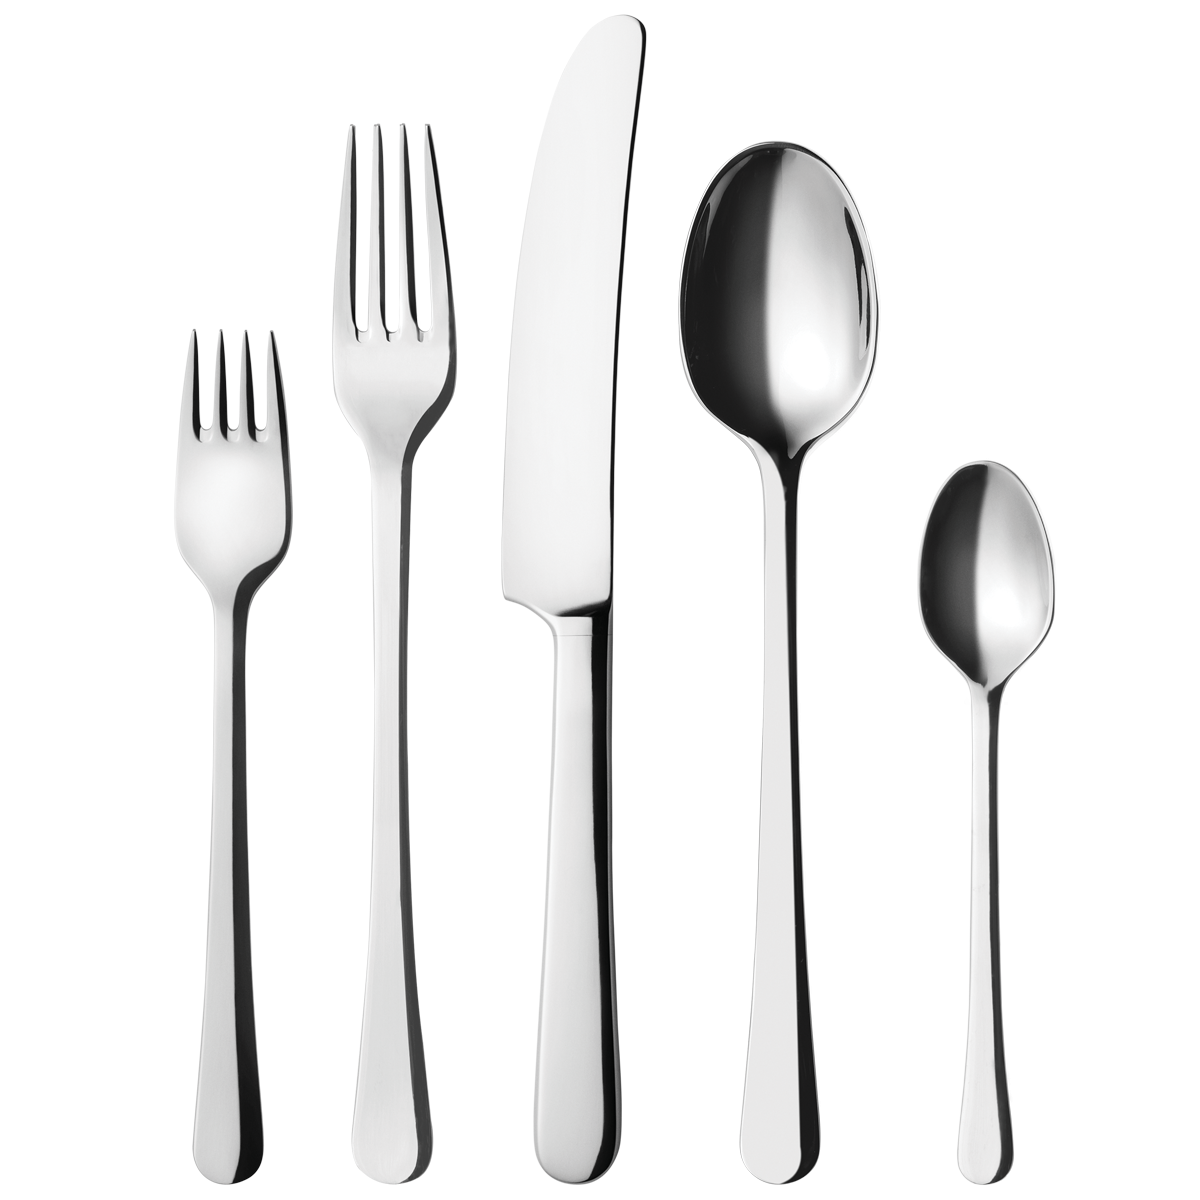 Spoon & Fork Png - ClipArt Best